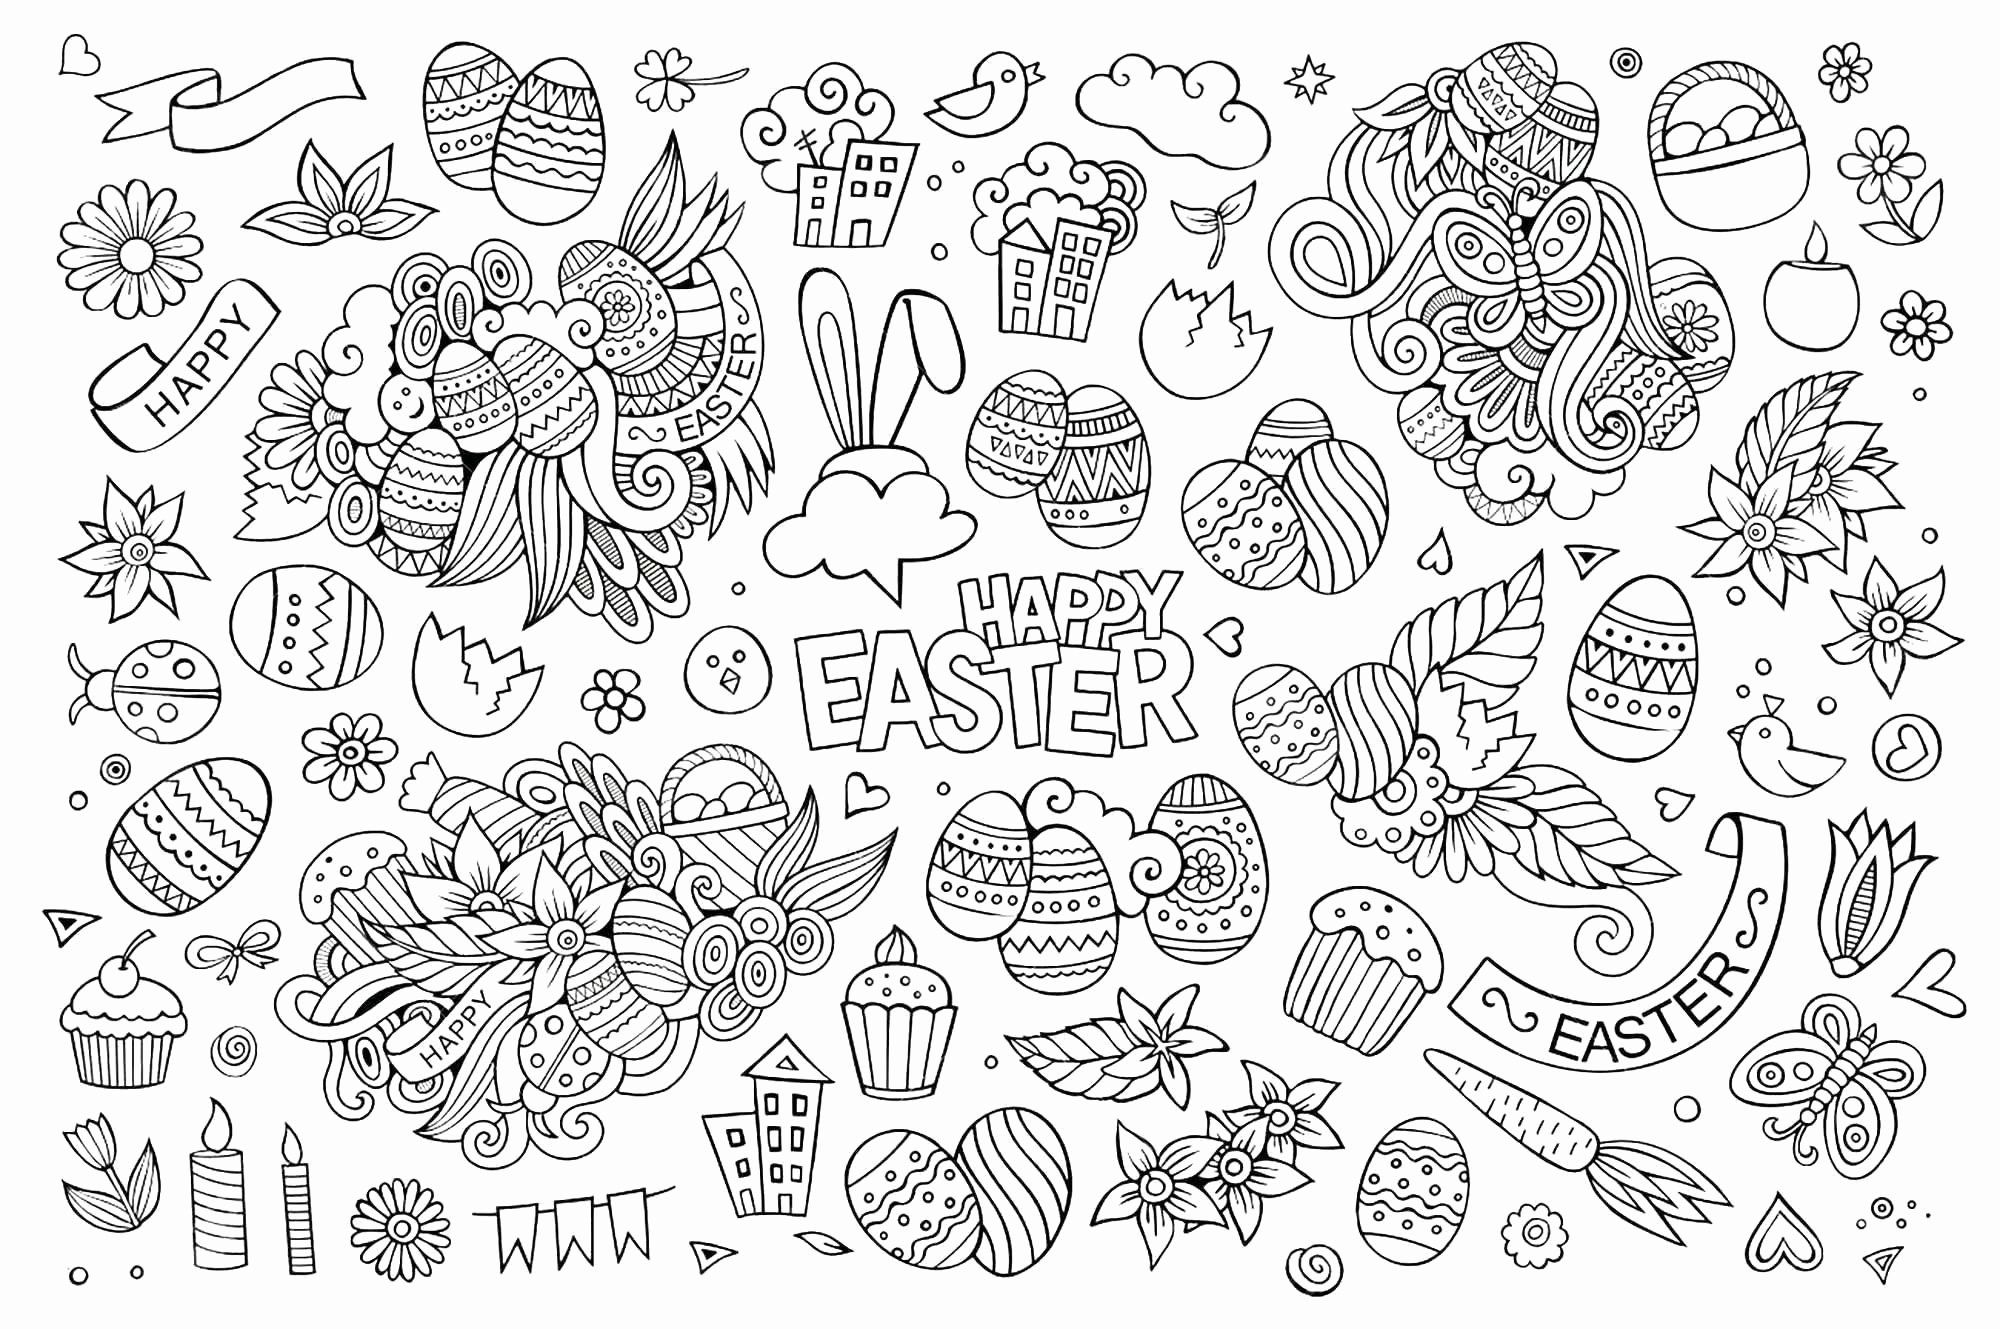 Money Coloring Pages Printable Lovely Coins Coloring Page Crunchprint Bunny Coloring Pages Halloween Coloring Pages Easter Coloring Pages